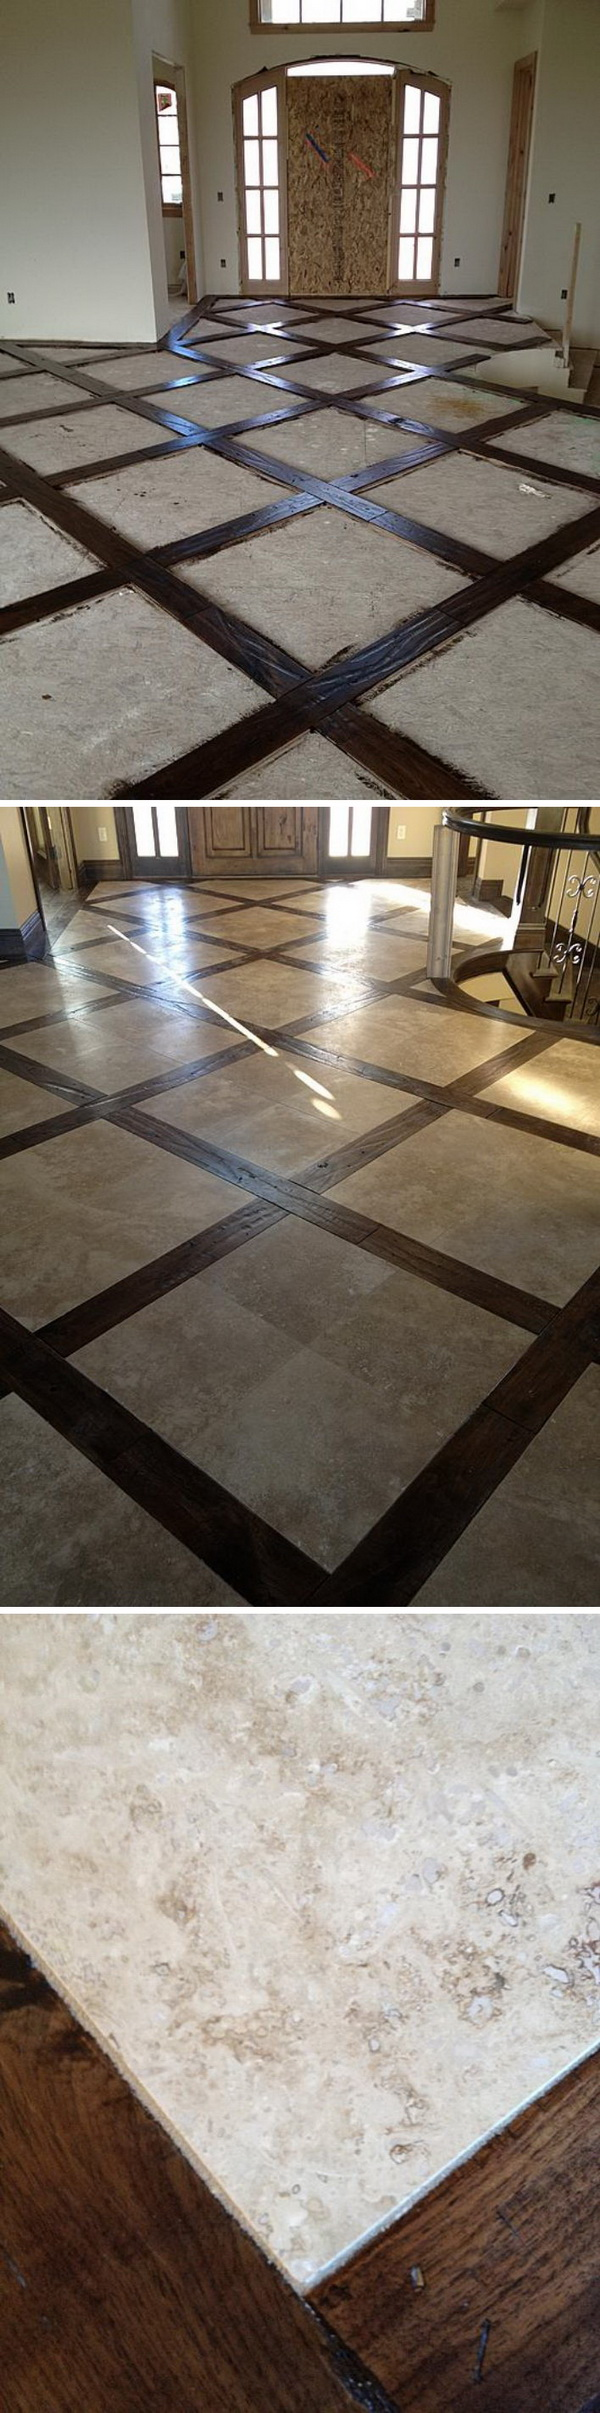 30 awesome flooring ideas for every room hative wood and tile basket weave floor dailygadgetfo Gallery